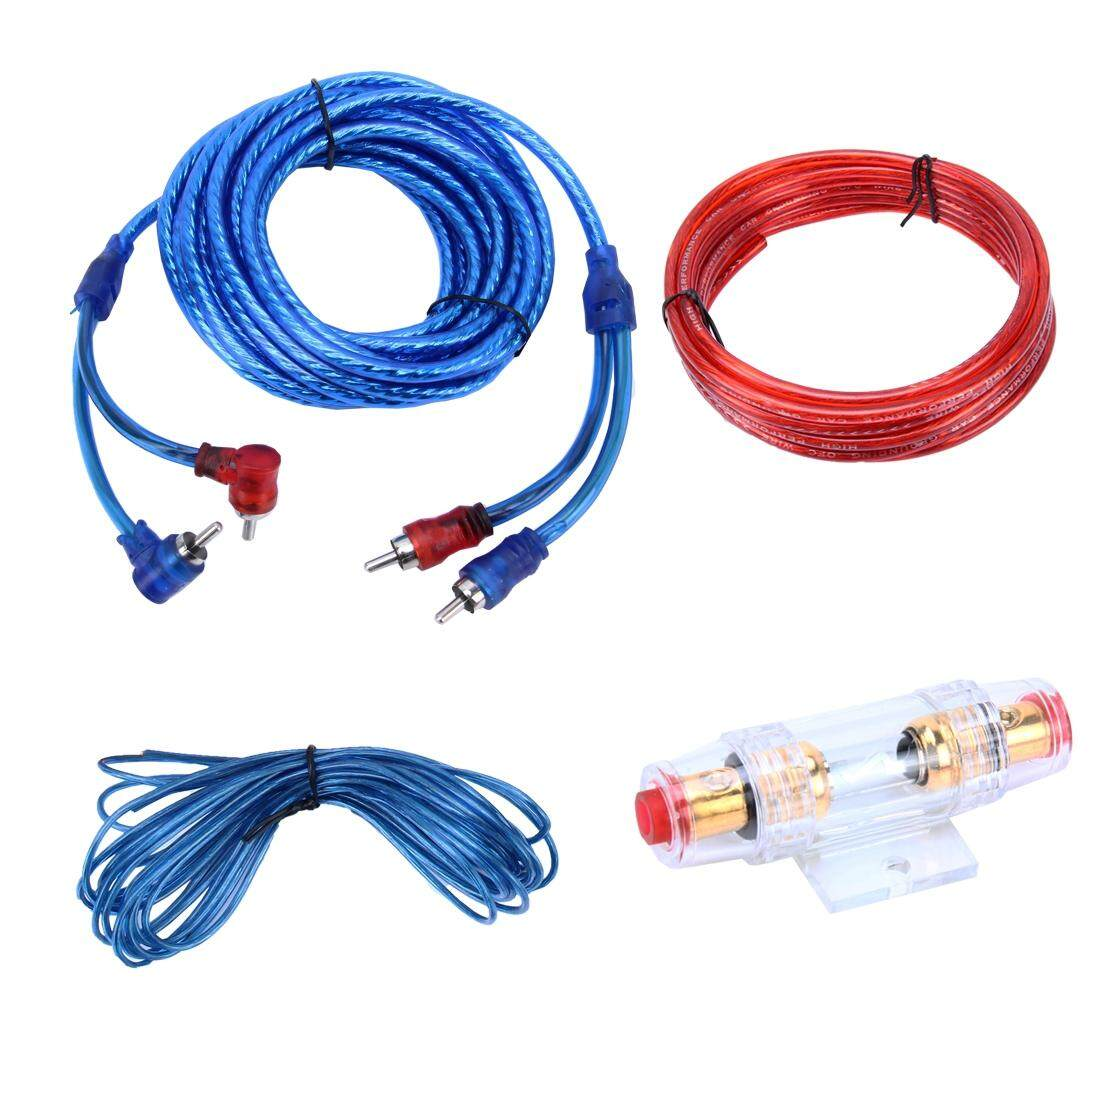 Car Audio Wiring Kit Philippines Solutions Details About 4 Gauge Premium Power Wire 3000w Anl Install Spark Plugs For Plug Wires Brands S Kca Complete Amplifier Installation